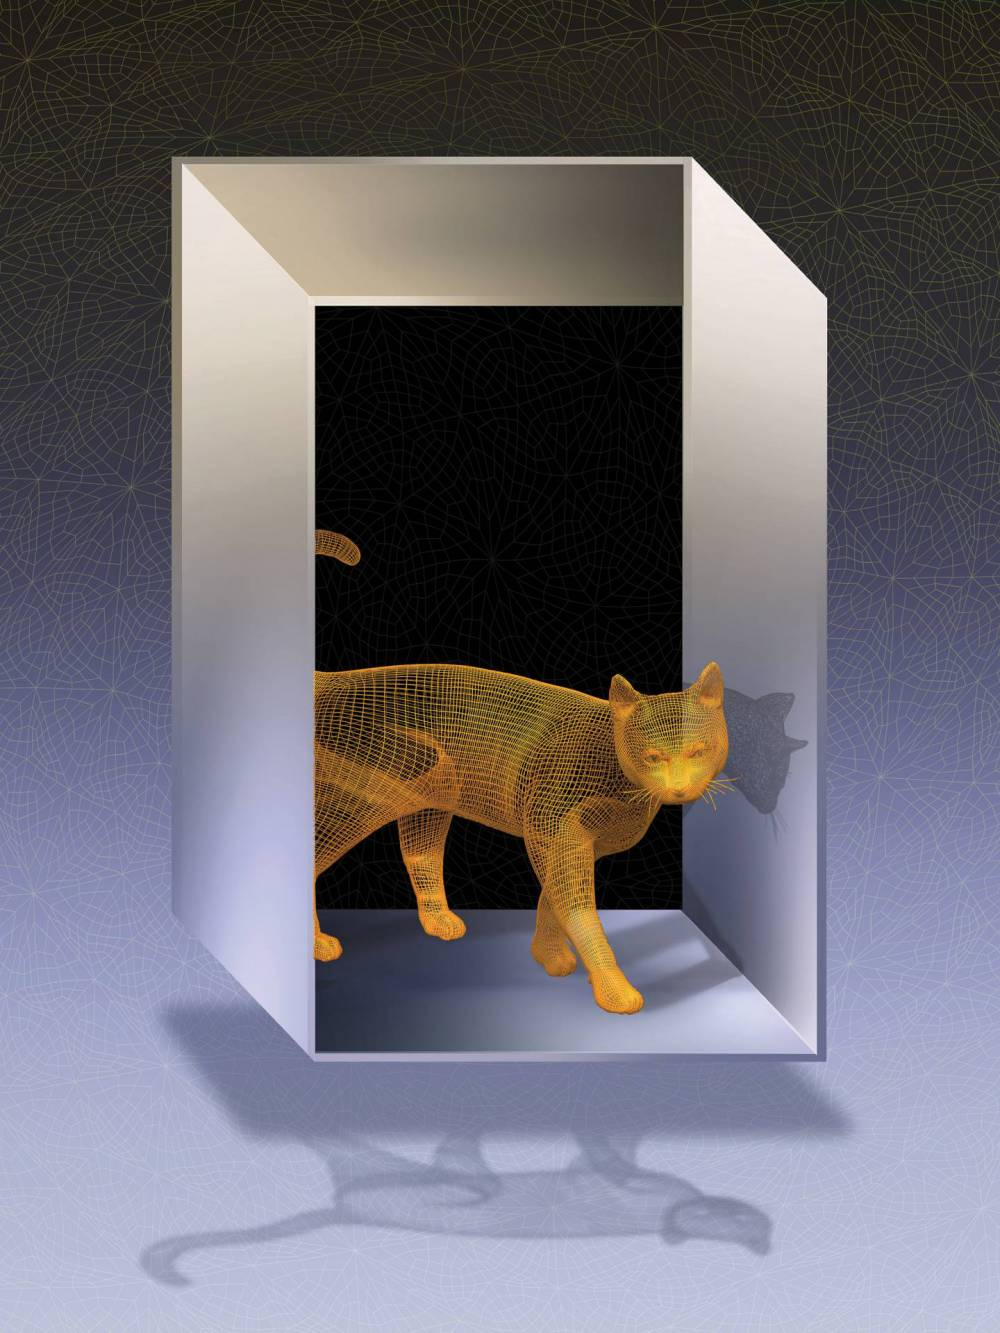 Schodinger's cat walks through an impossible door